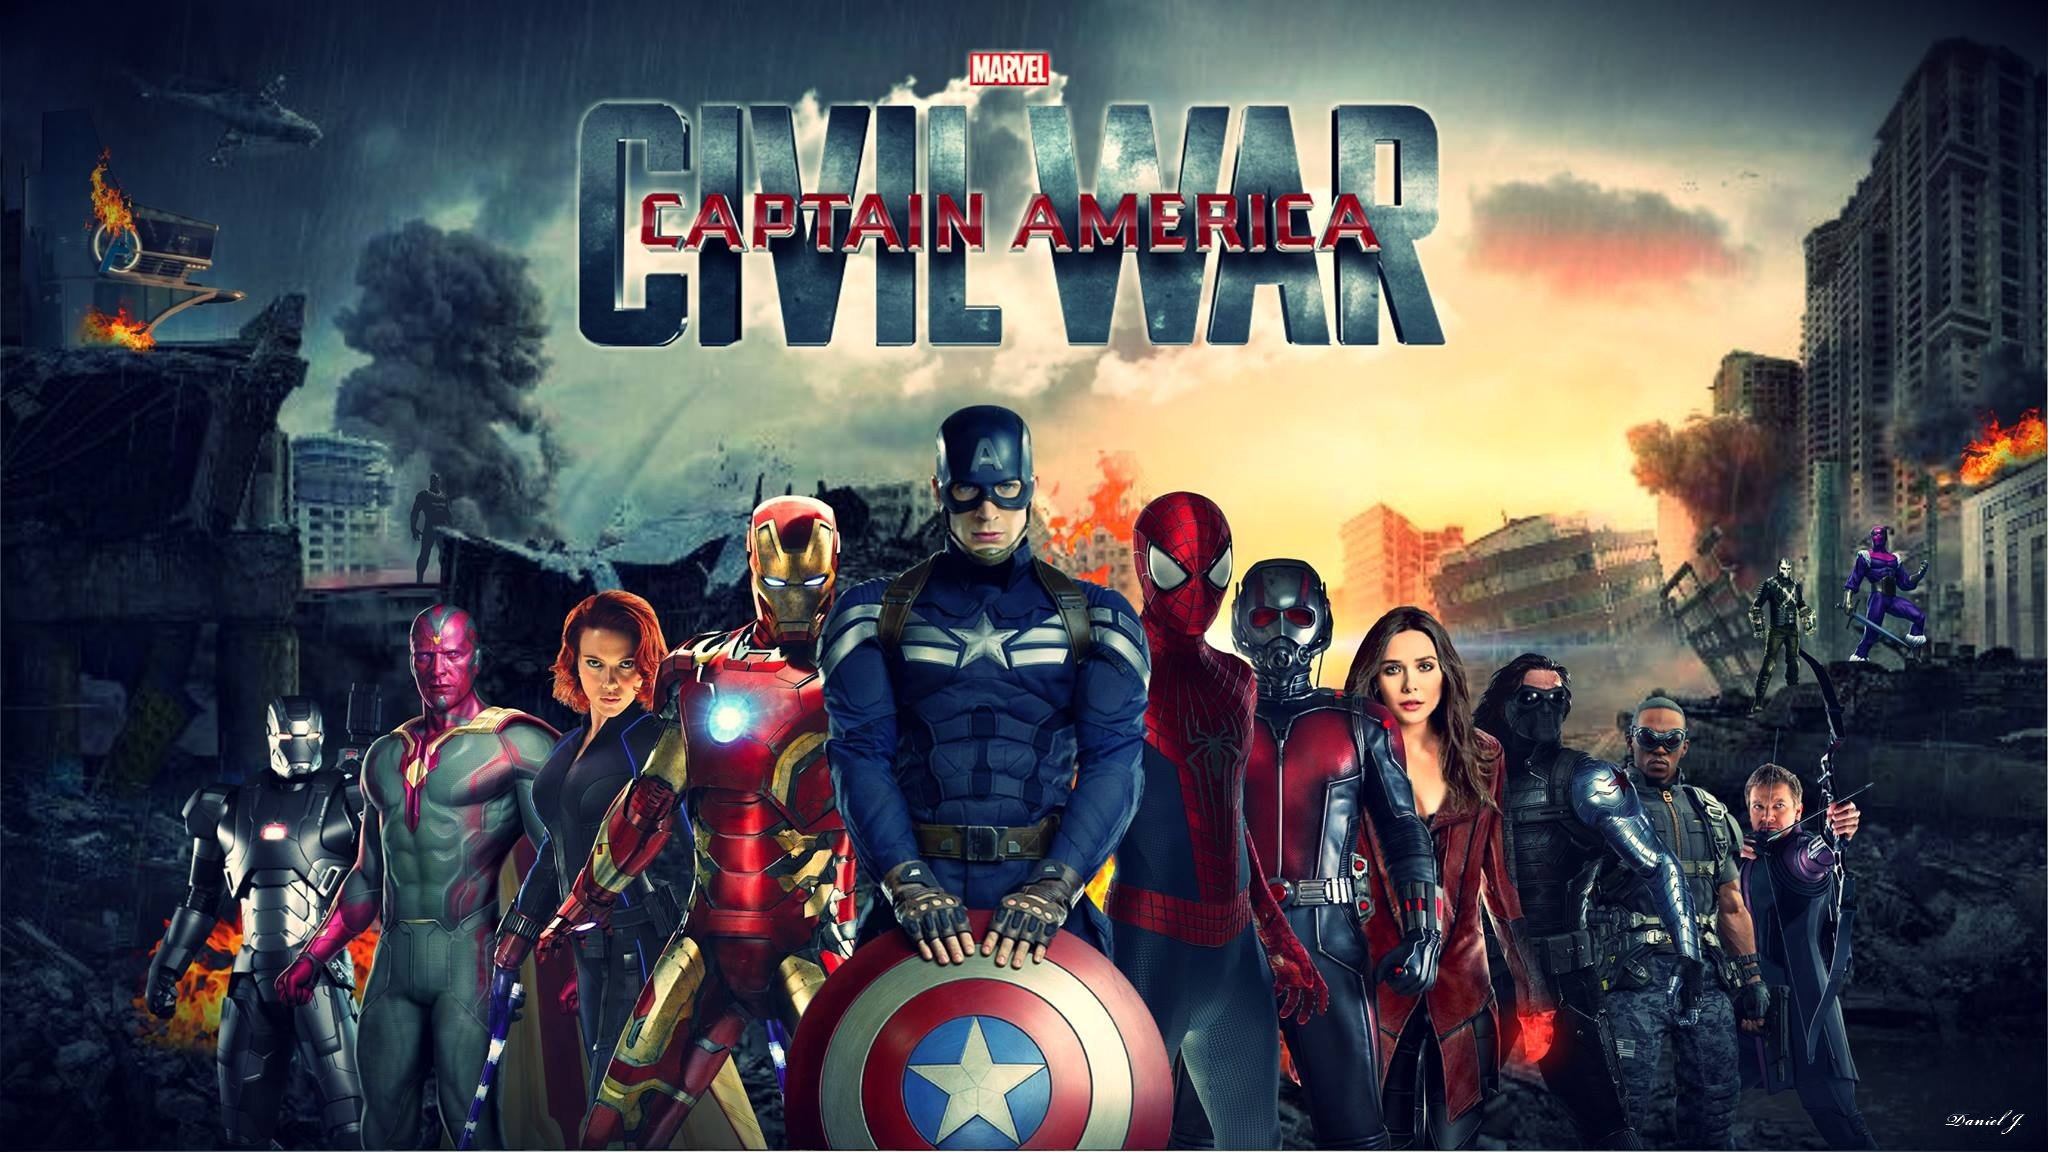 CAPTAIN AMERICA 3 Civil War marvel superhero action fighting 1cacw 2048x1152